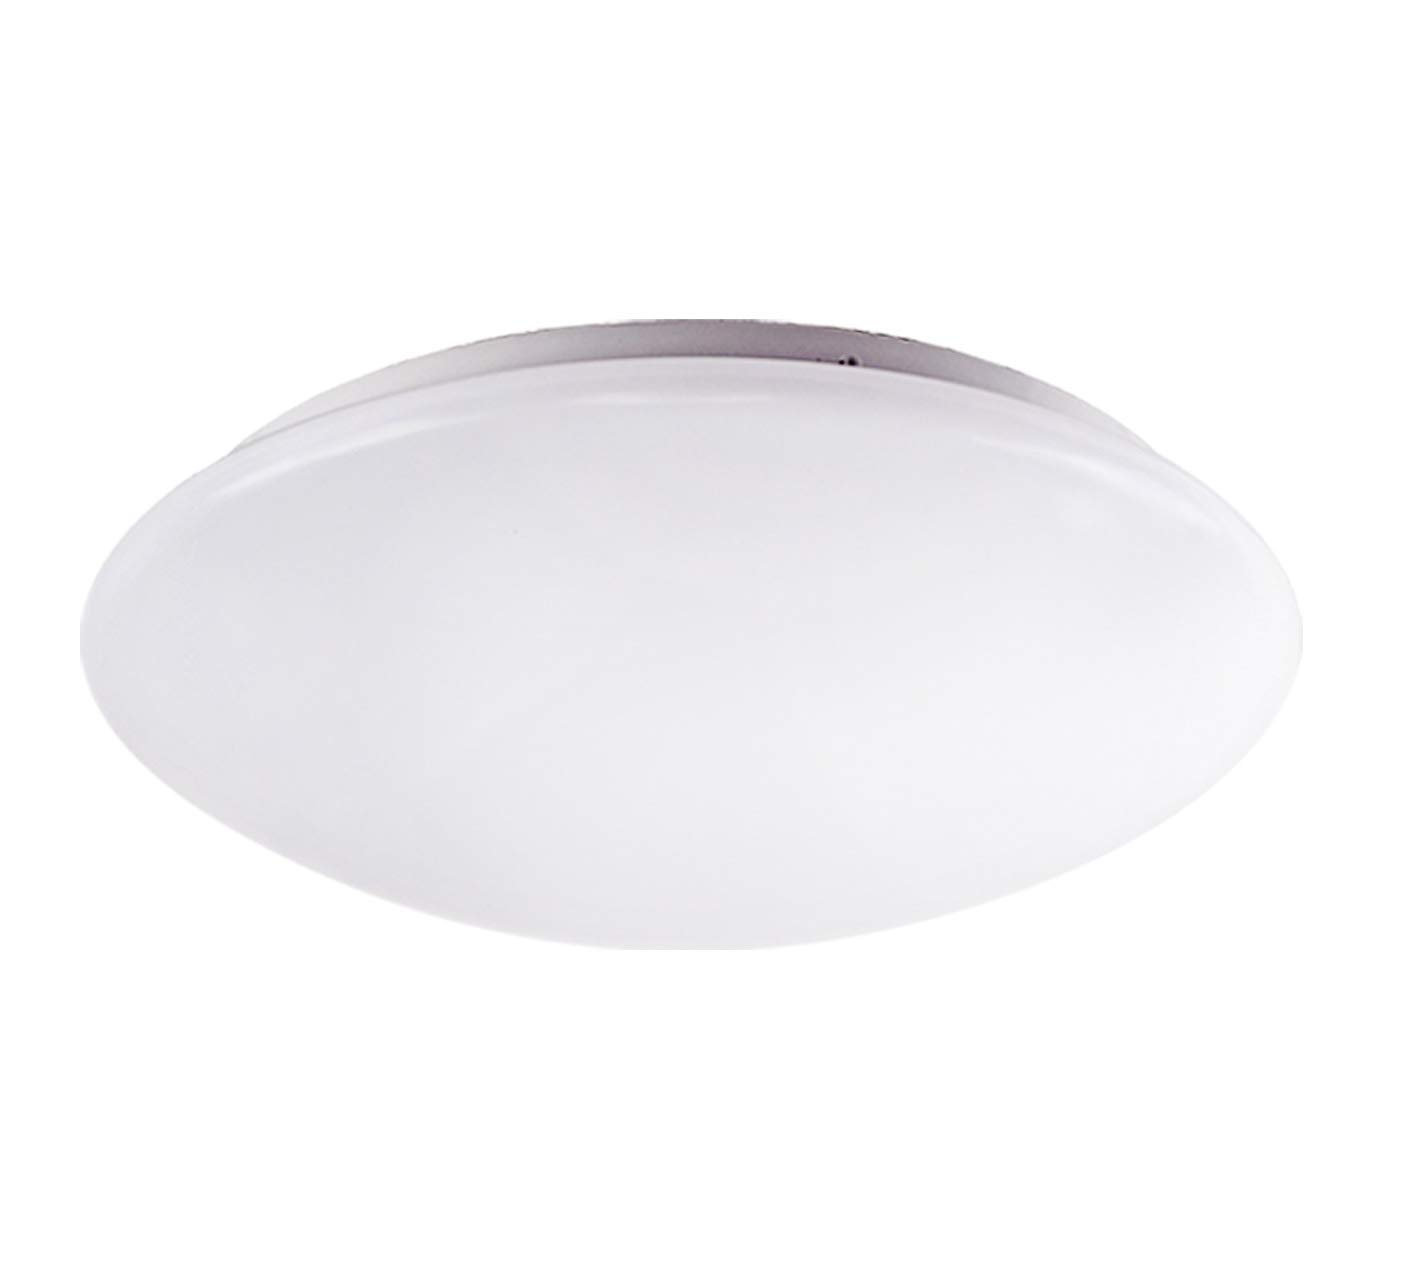 Ostwin 14 inch led ceiling light fixture residential